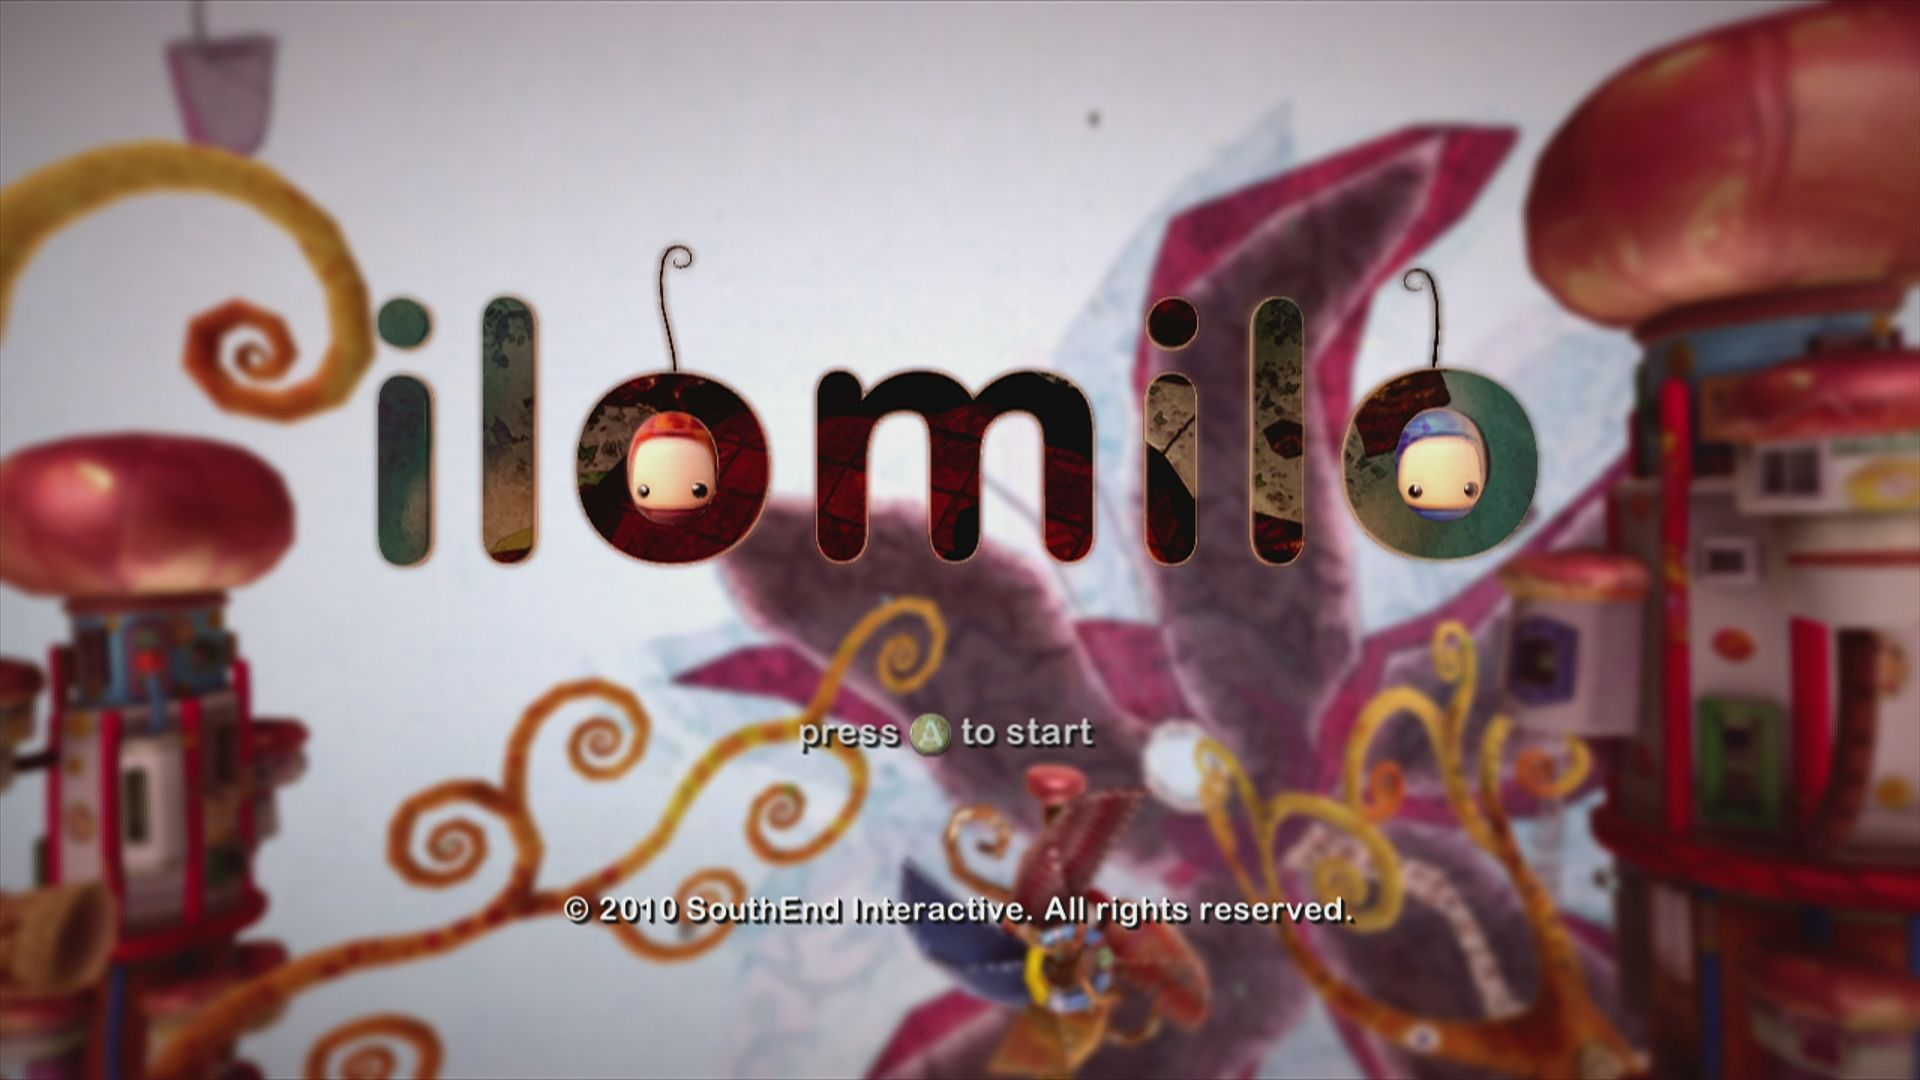 ilomilo Xbox 360 Start screen